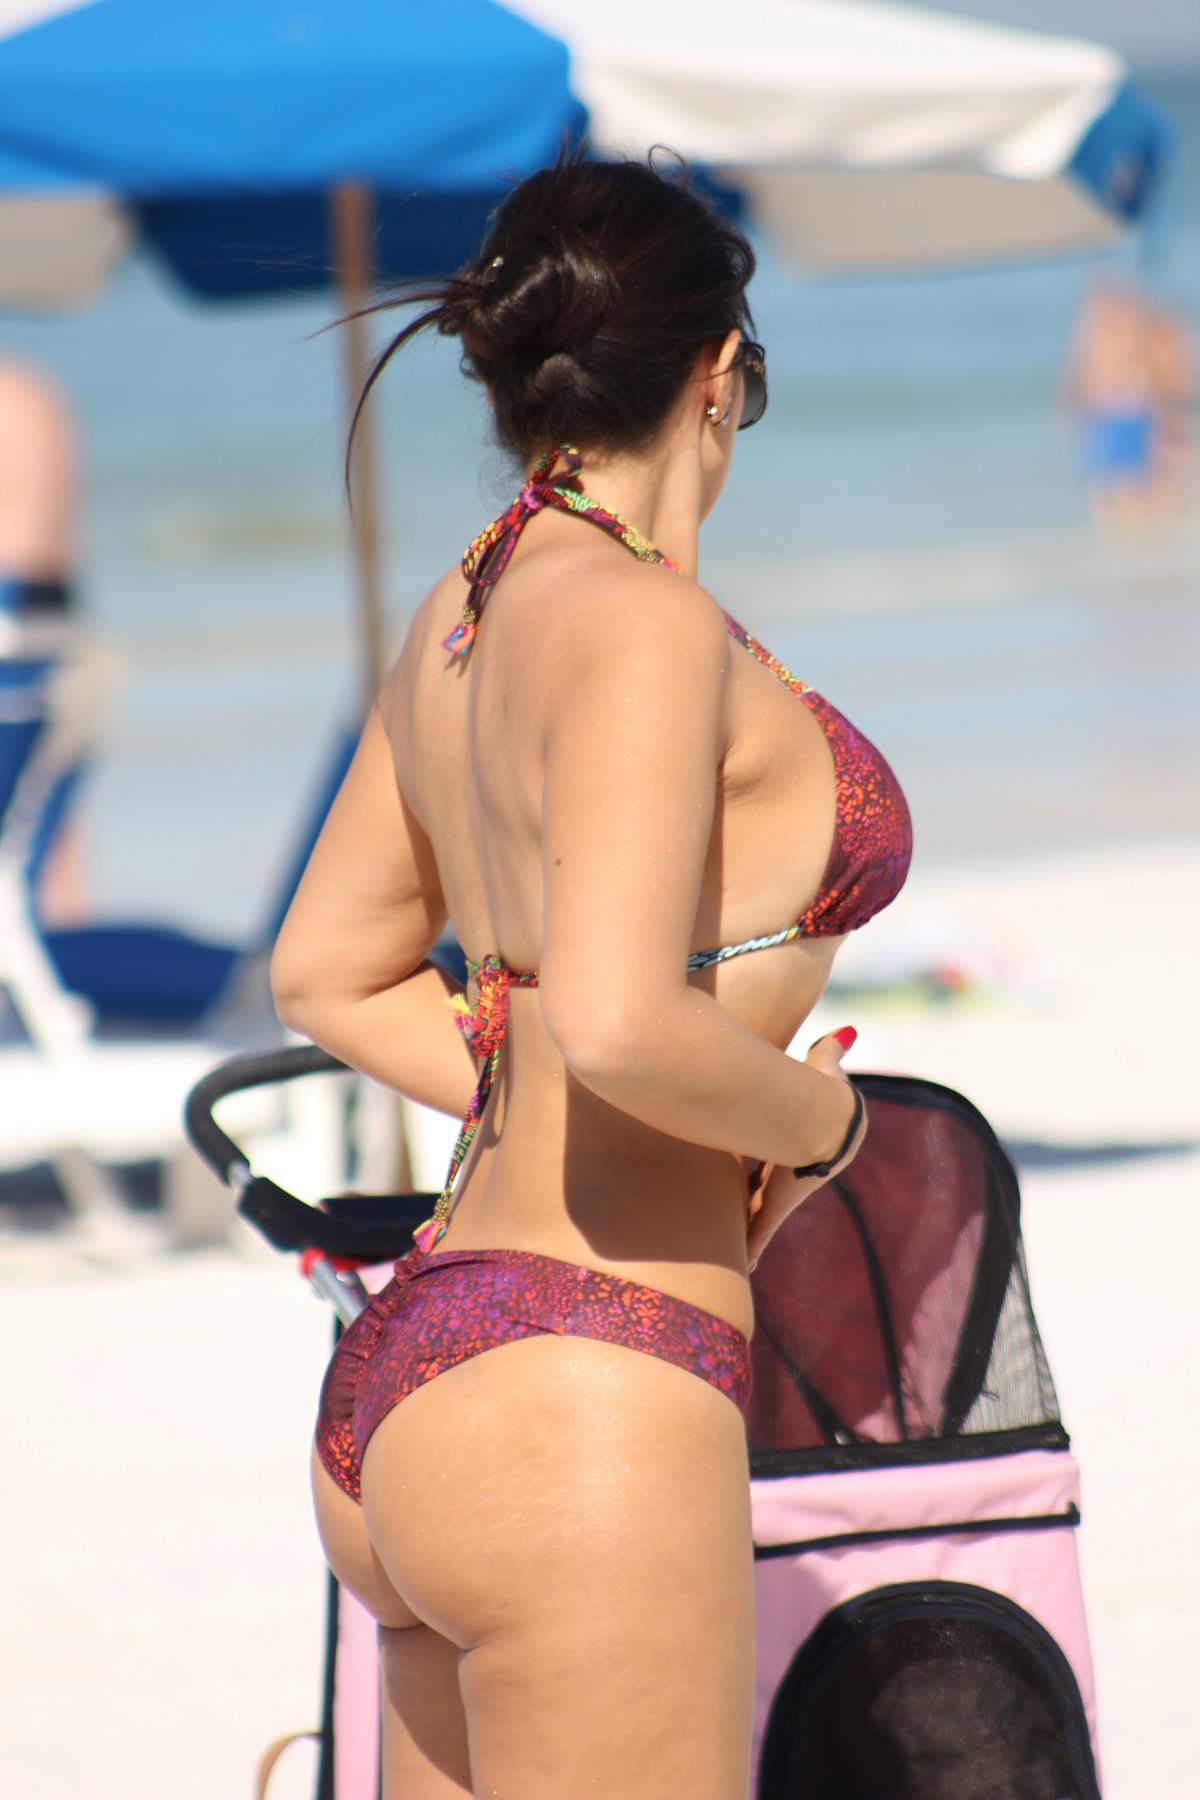 Andrea Calle in Bikini Top and Shorts Pic 5 of 35